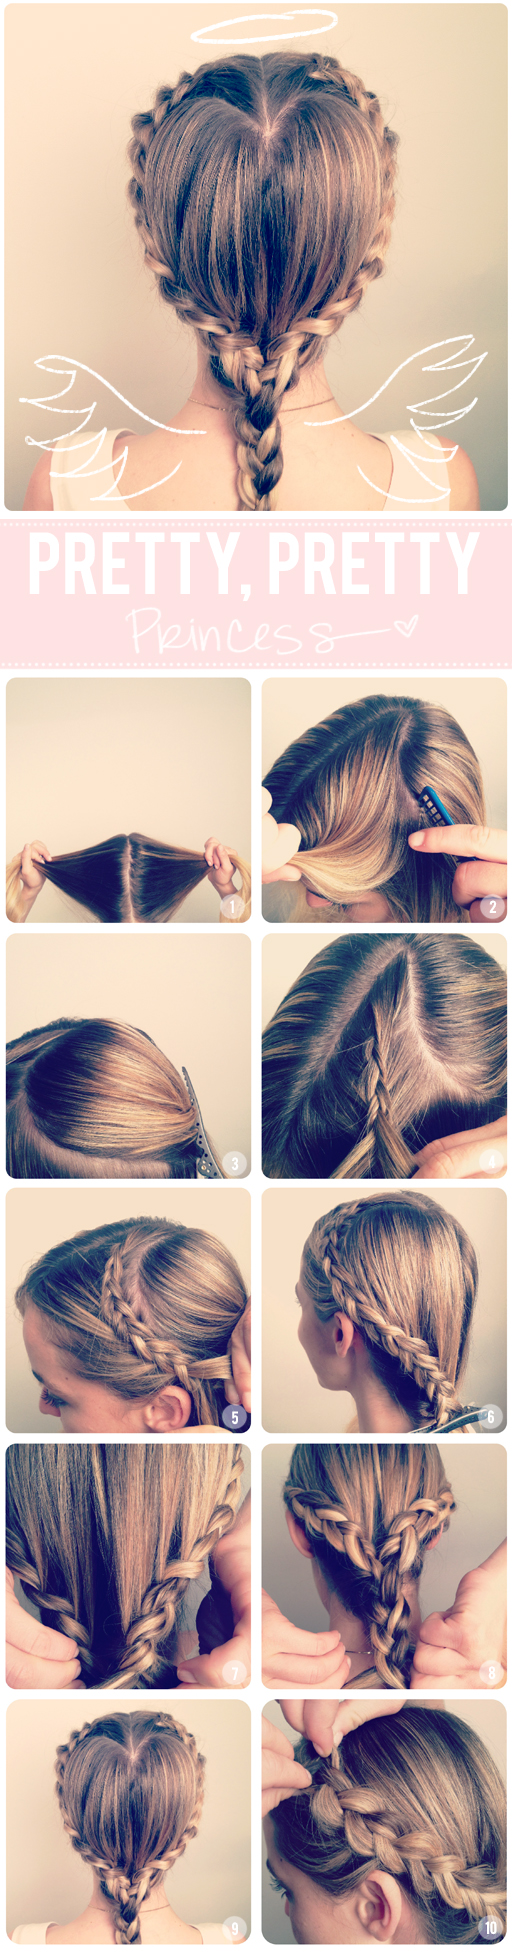 Easy Hairstyles Using Plaits Braids